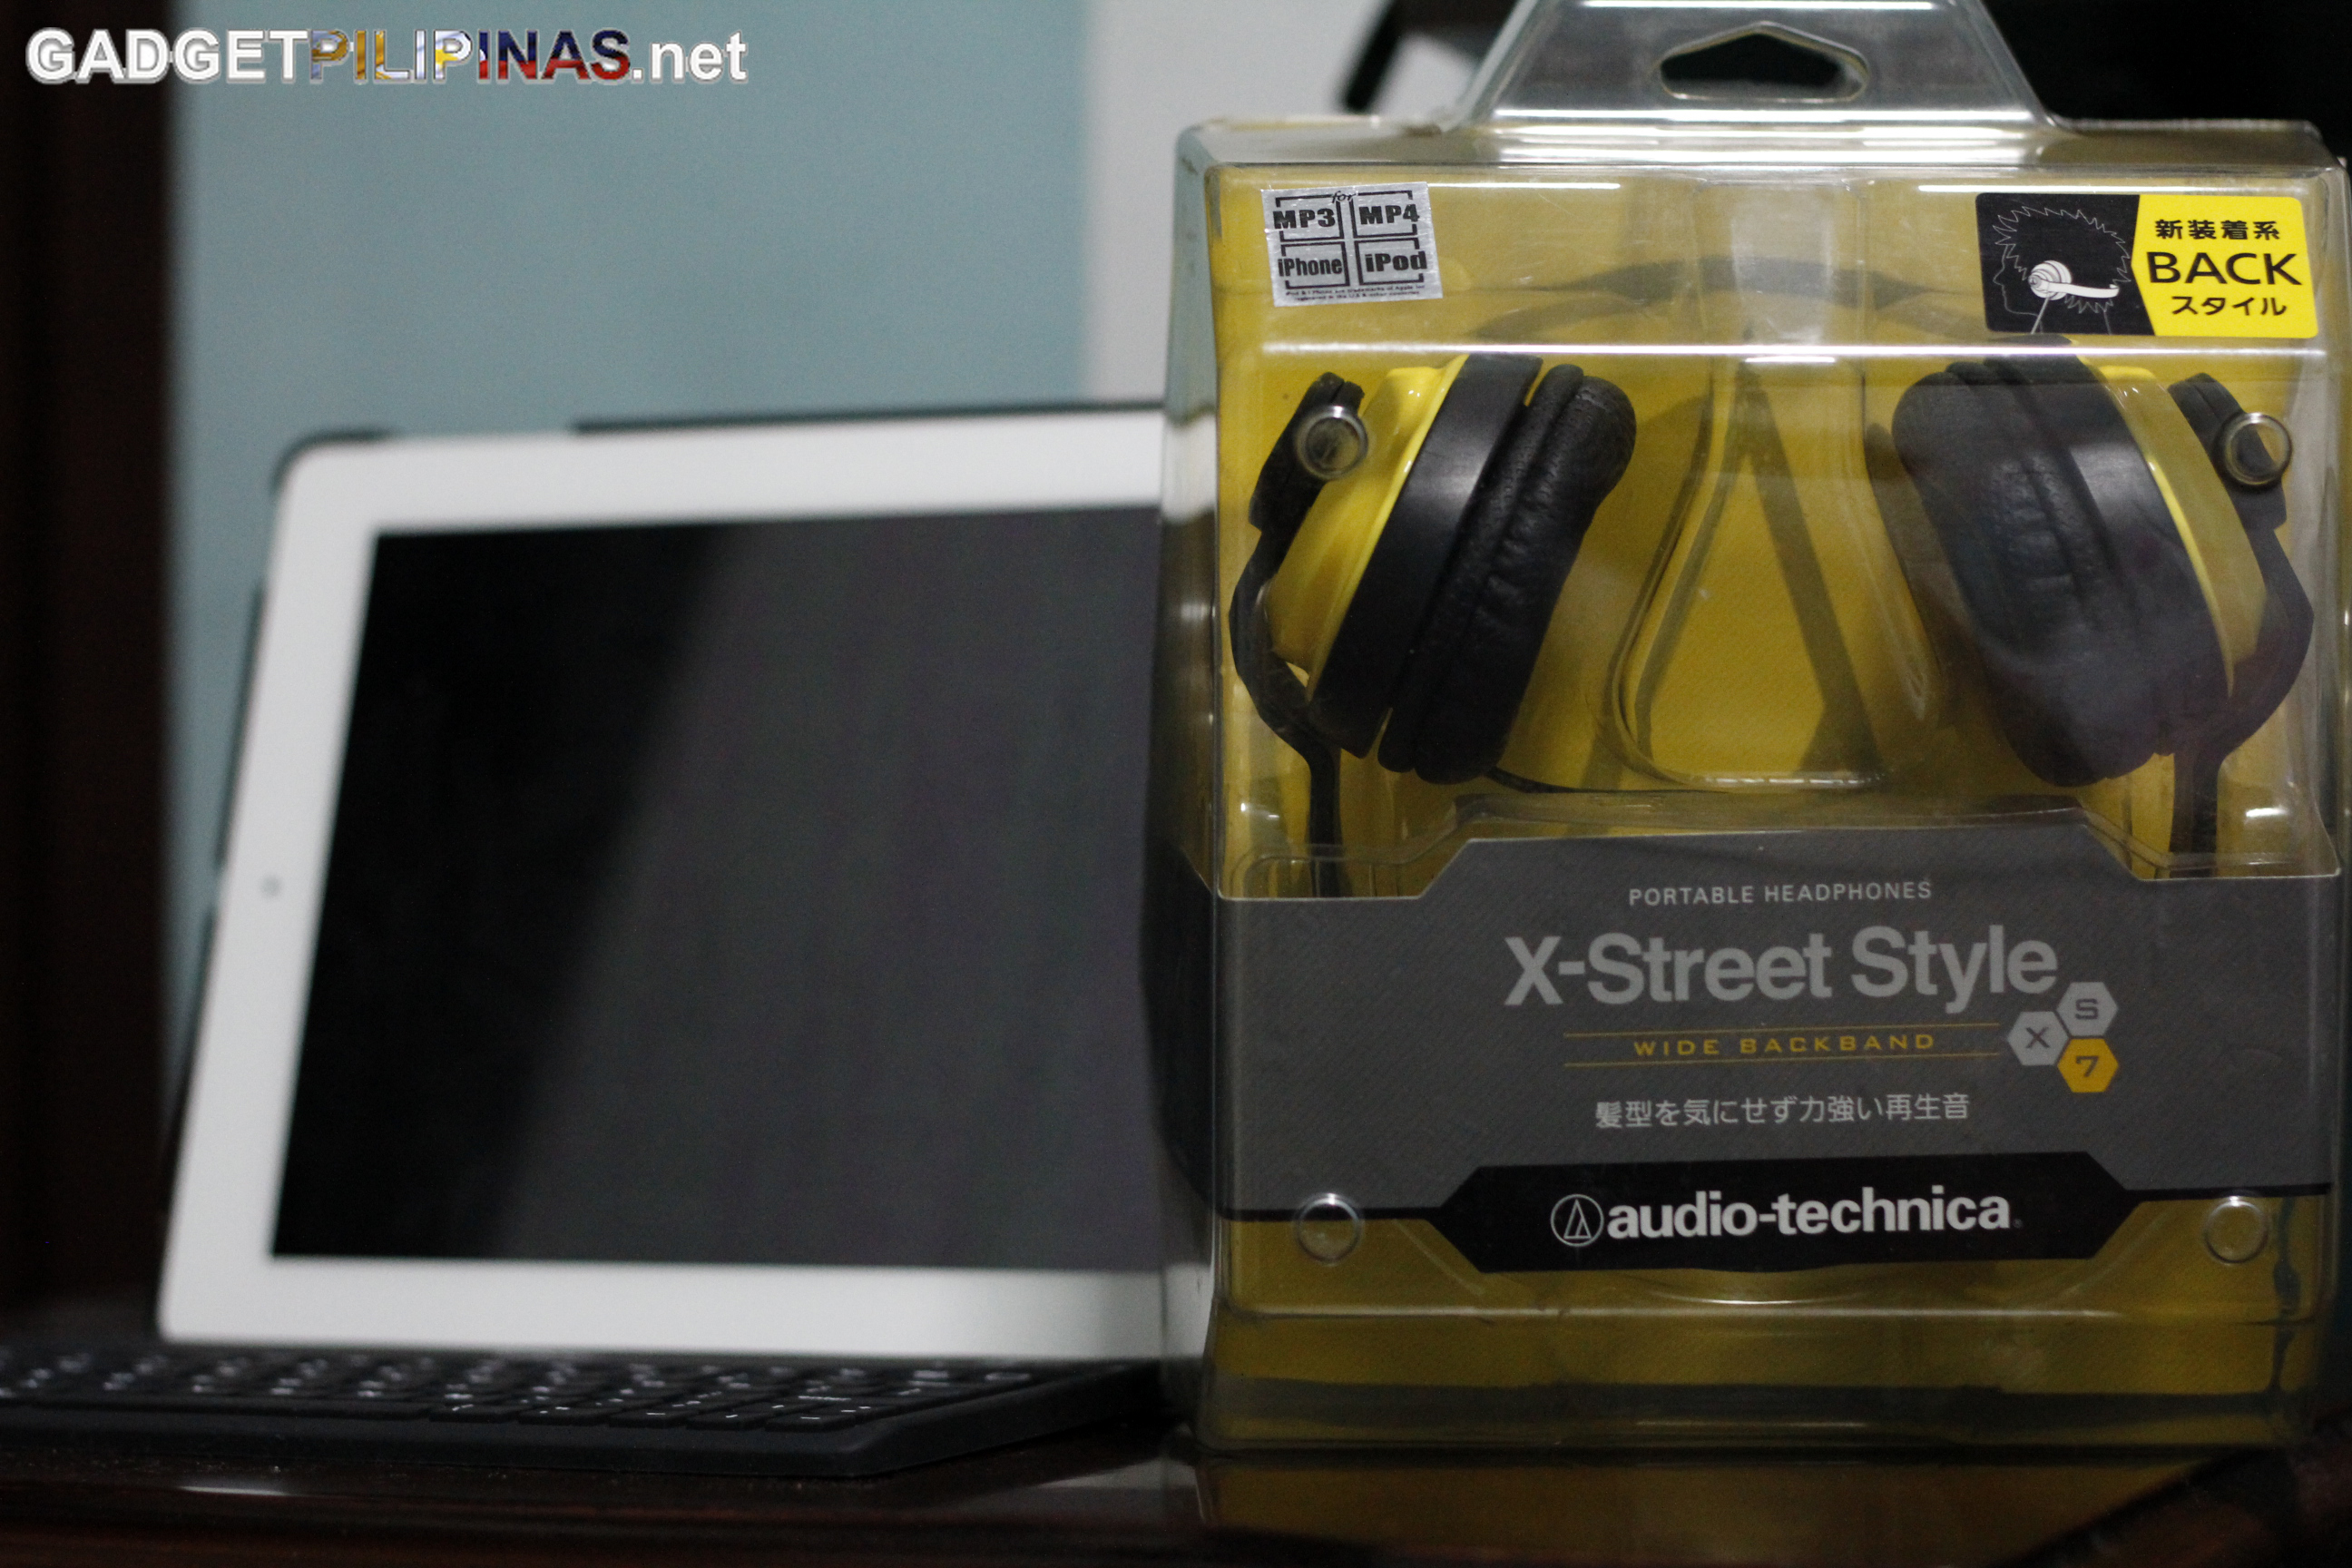 MG 9955 - Audio-Technica X-Street Style ATH-XS7 Review